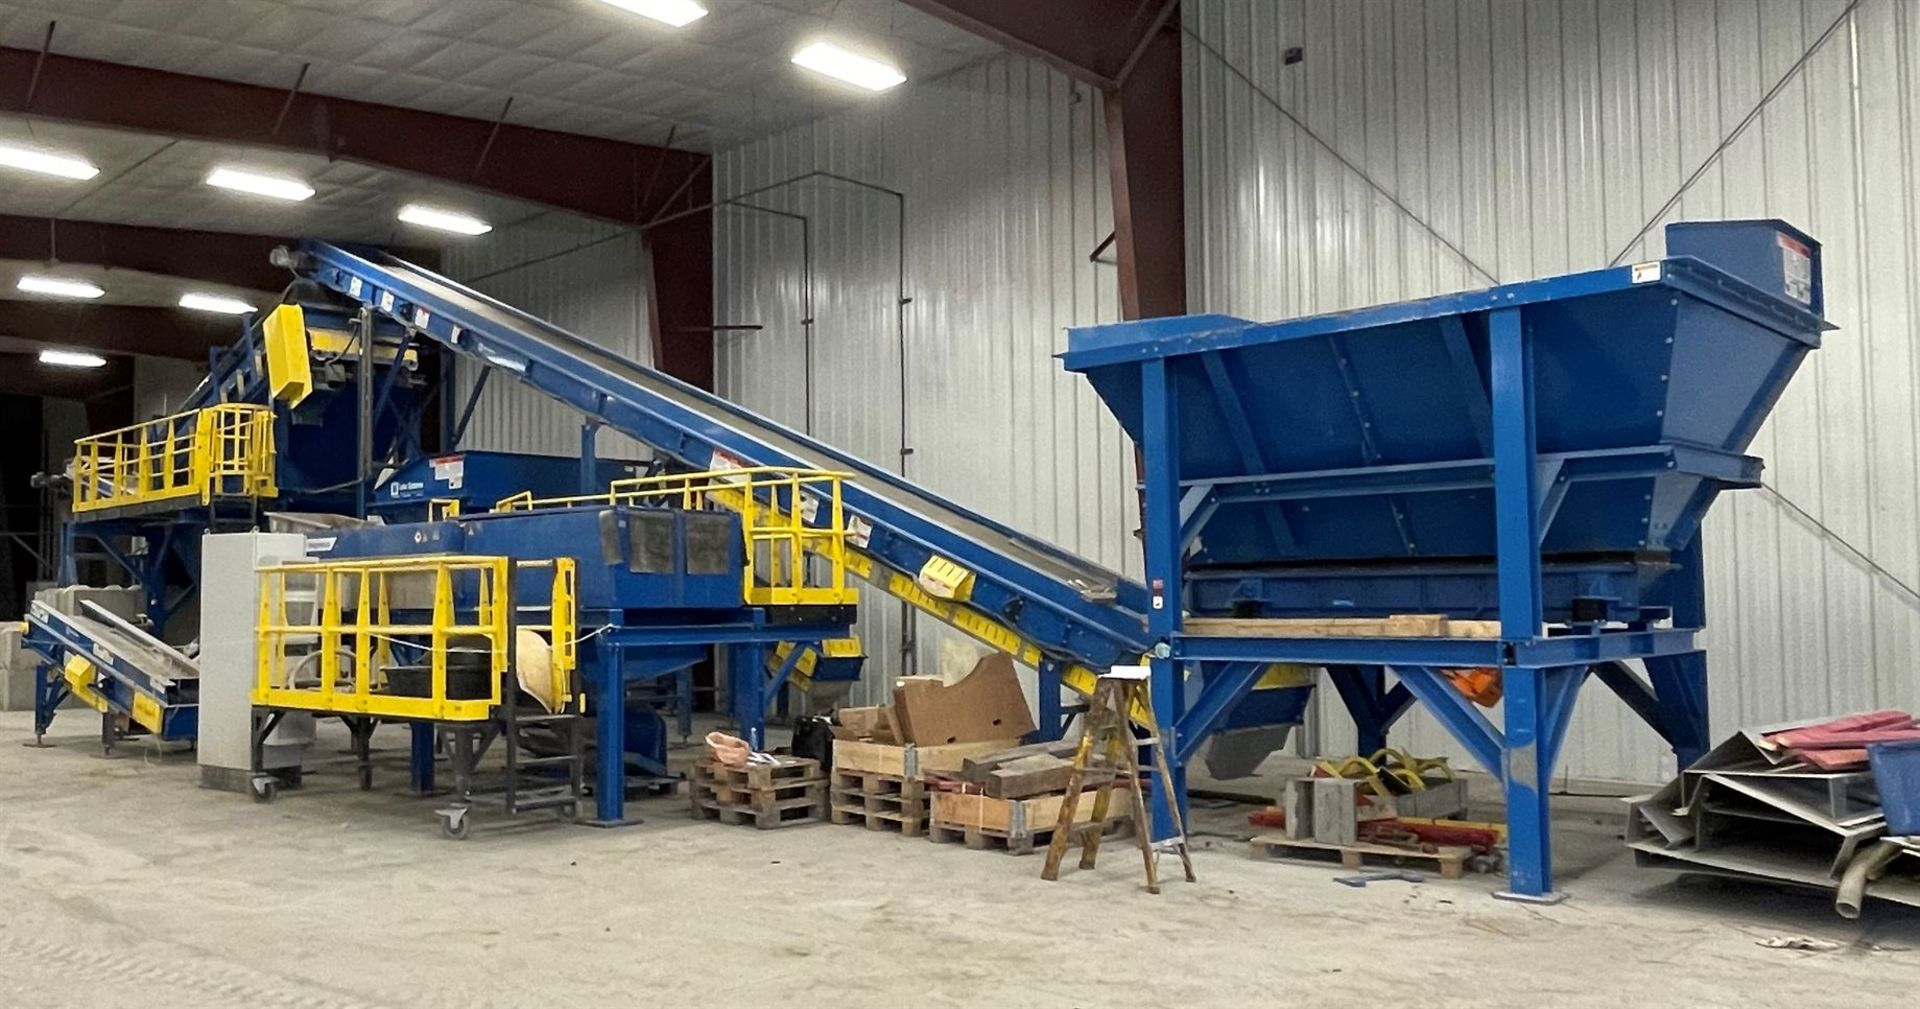 BULK LOT: 2015 VDL SYSTEMS Metal Recovery Shaker Separation Line as a Complete System, Comprising